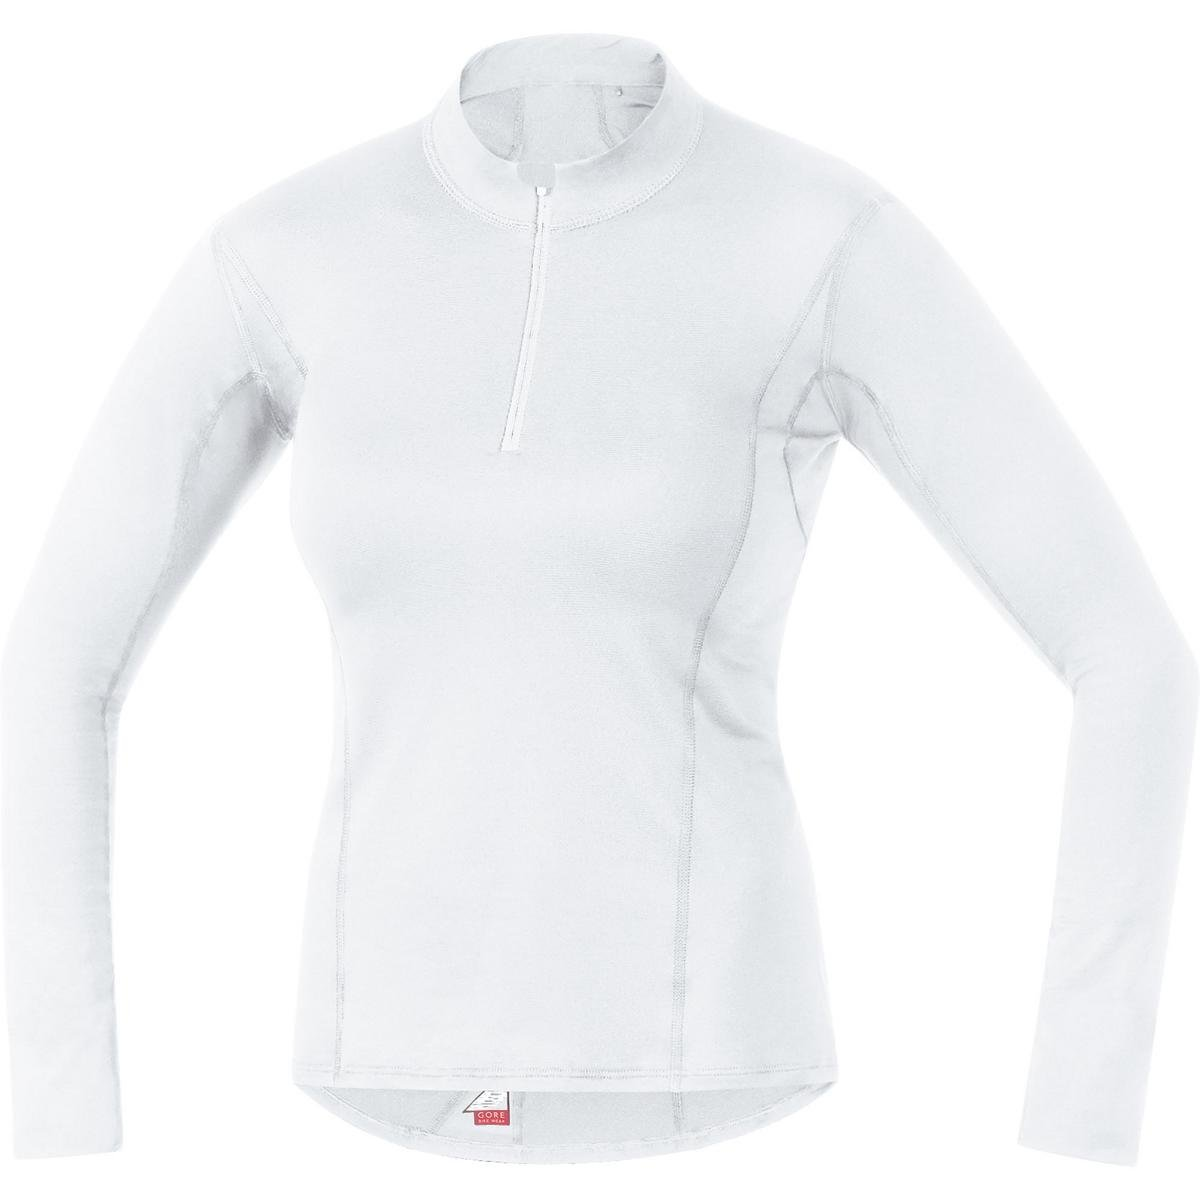 GORE BIKE WEAR Base Layer - Camiseta Interior de Ciclismo para Mujer, Color 986